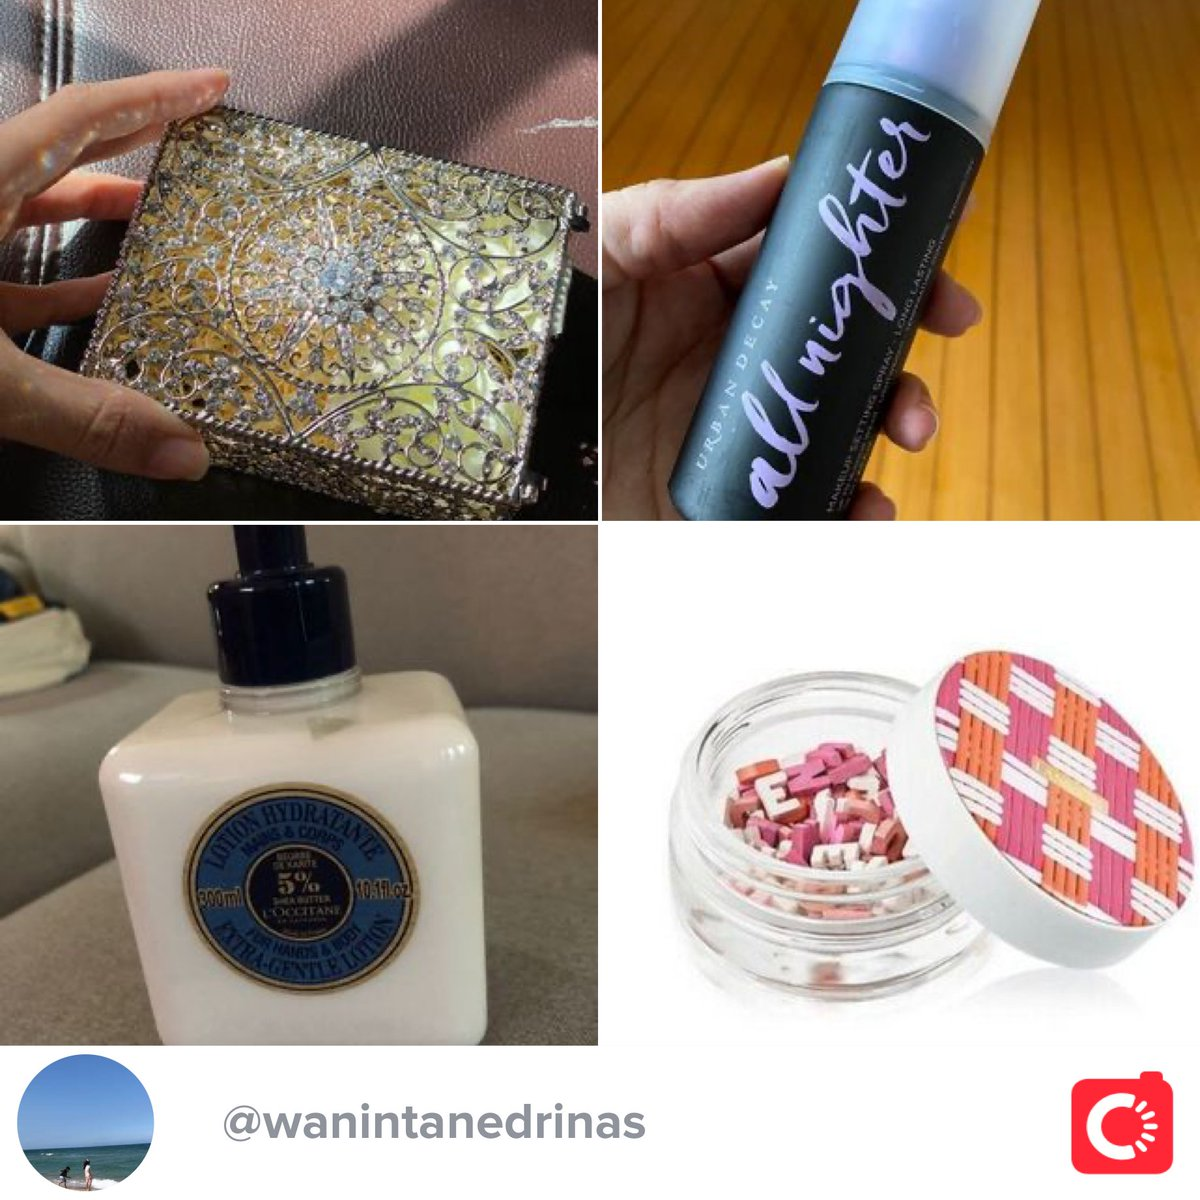 Come see what I'm selling on Carousell: https://t.co/V95aKIYaSO #carousell @thecarousell https://t.co/5IZUmbSOFY